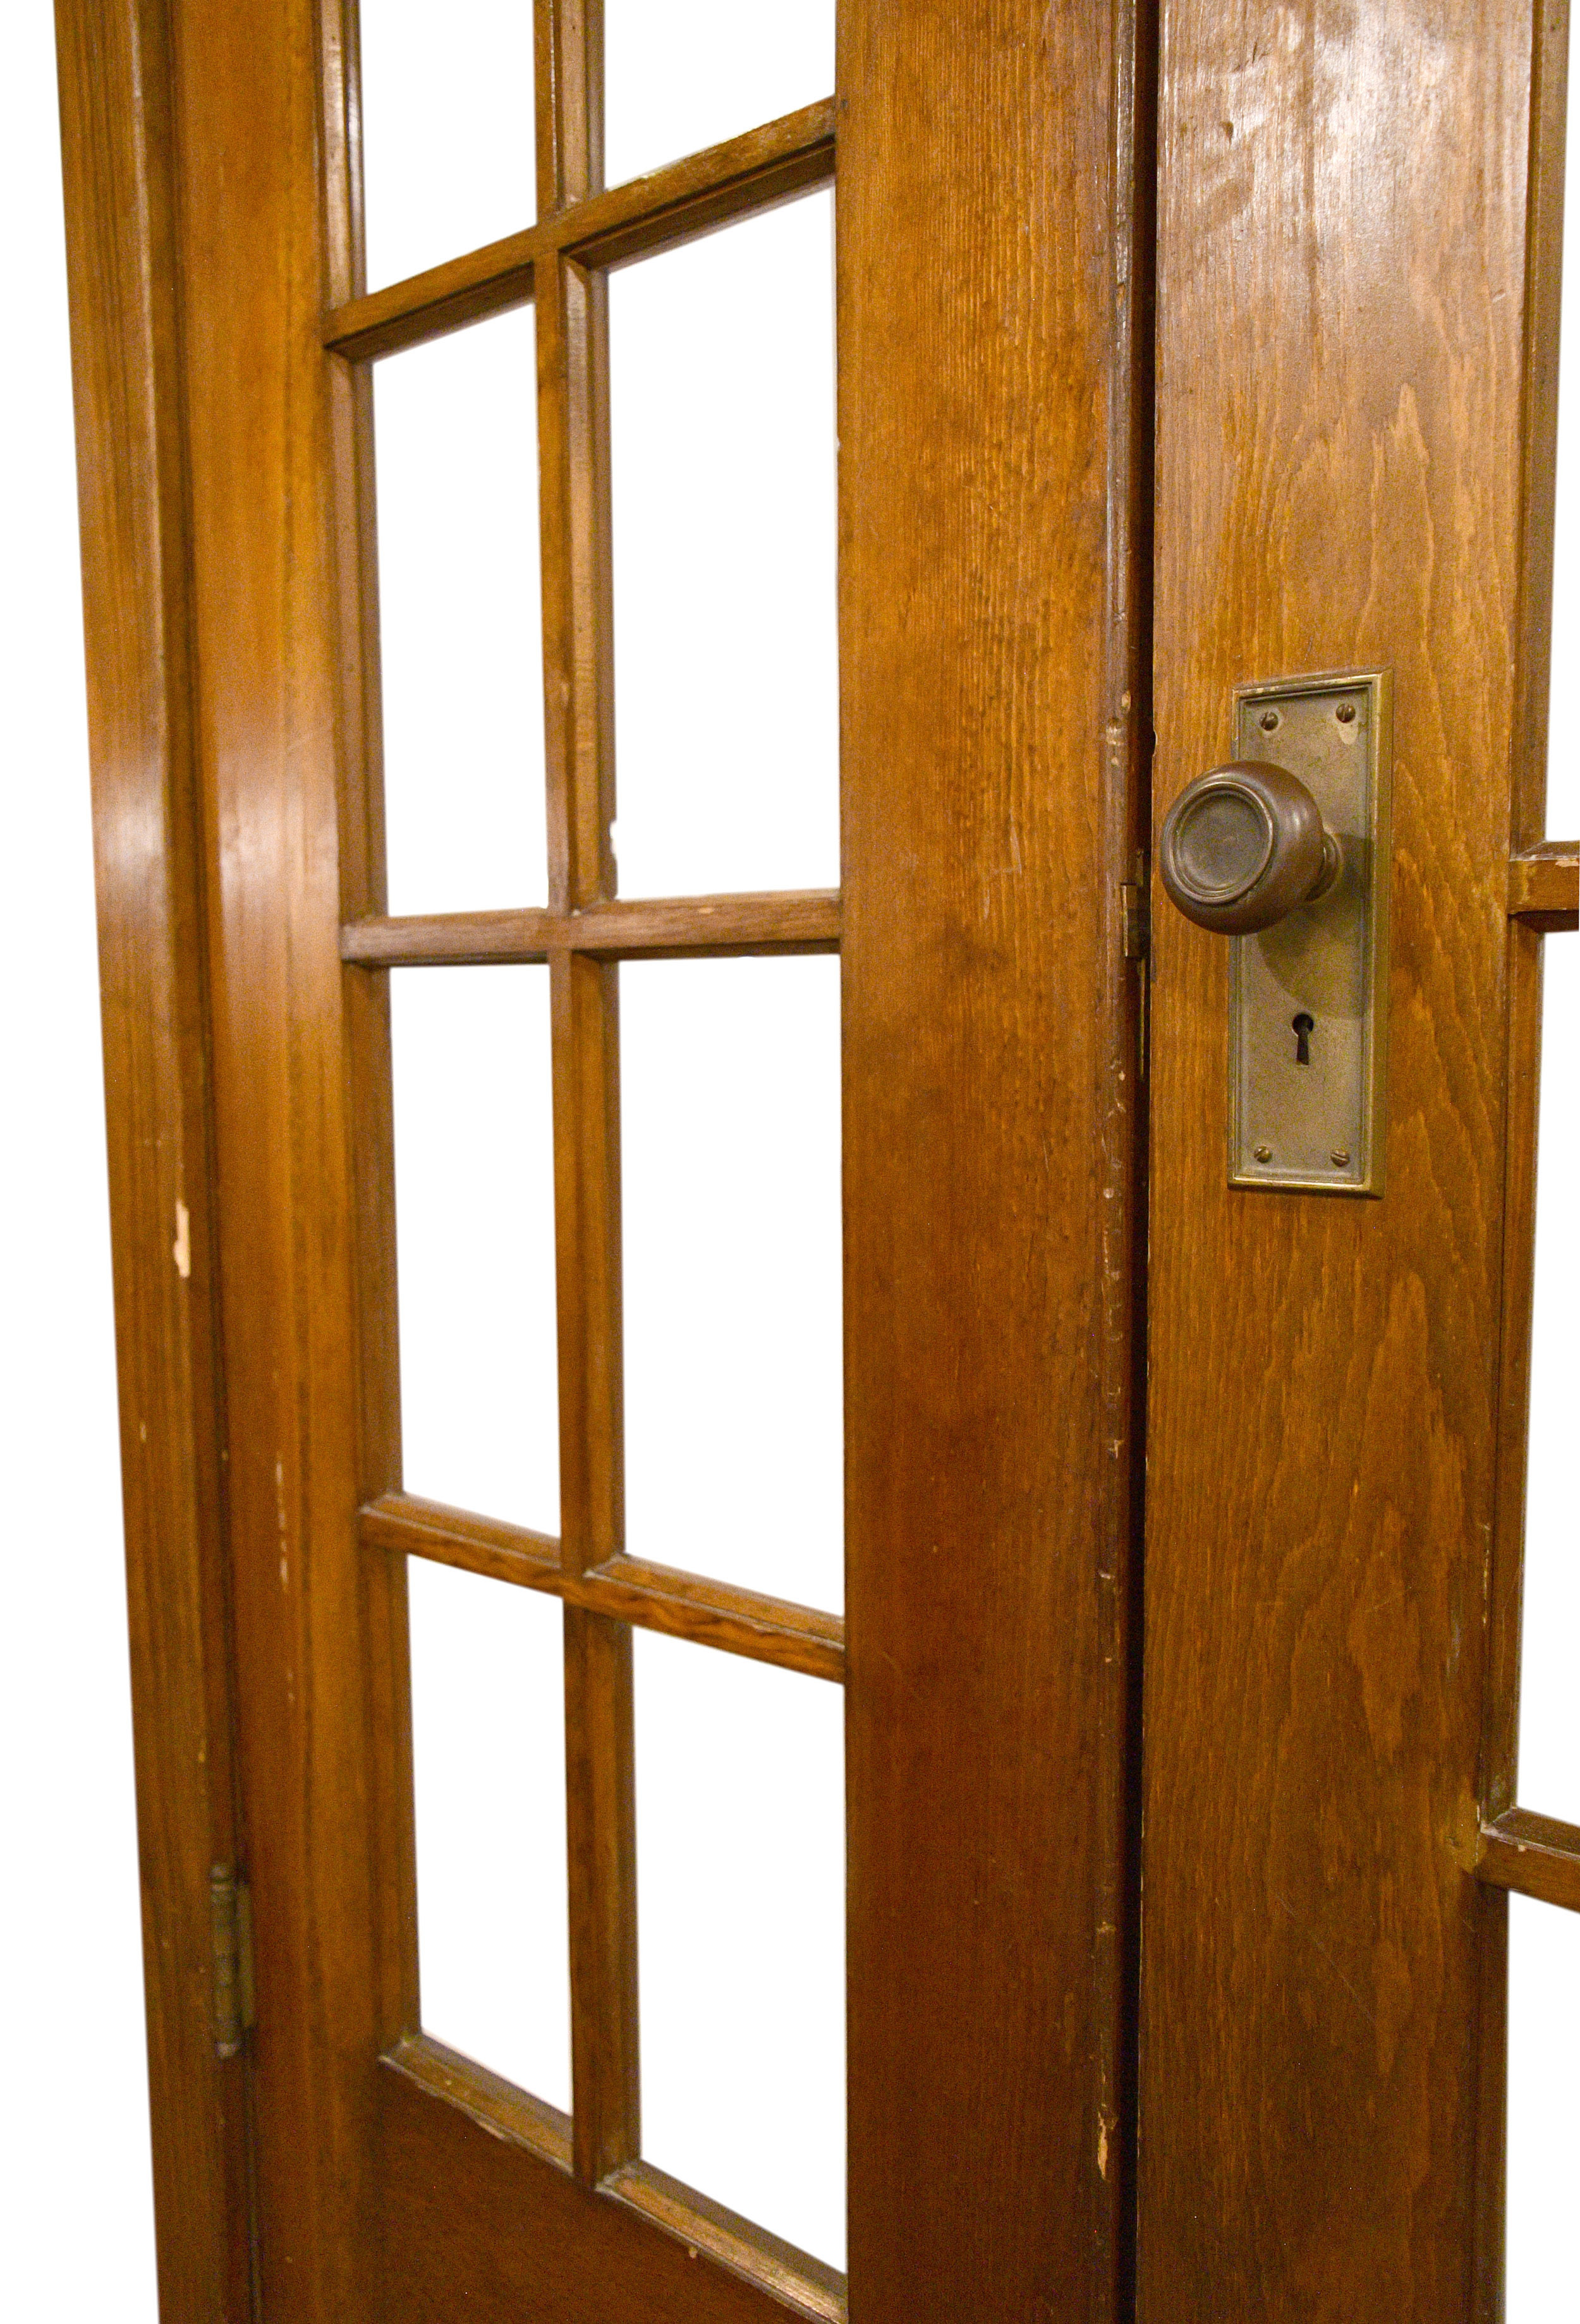 10-pane-glass-door-with-transom-1.jpg